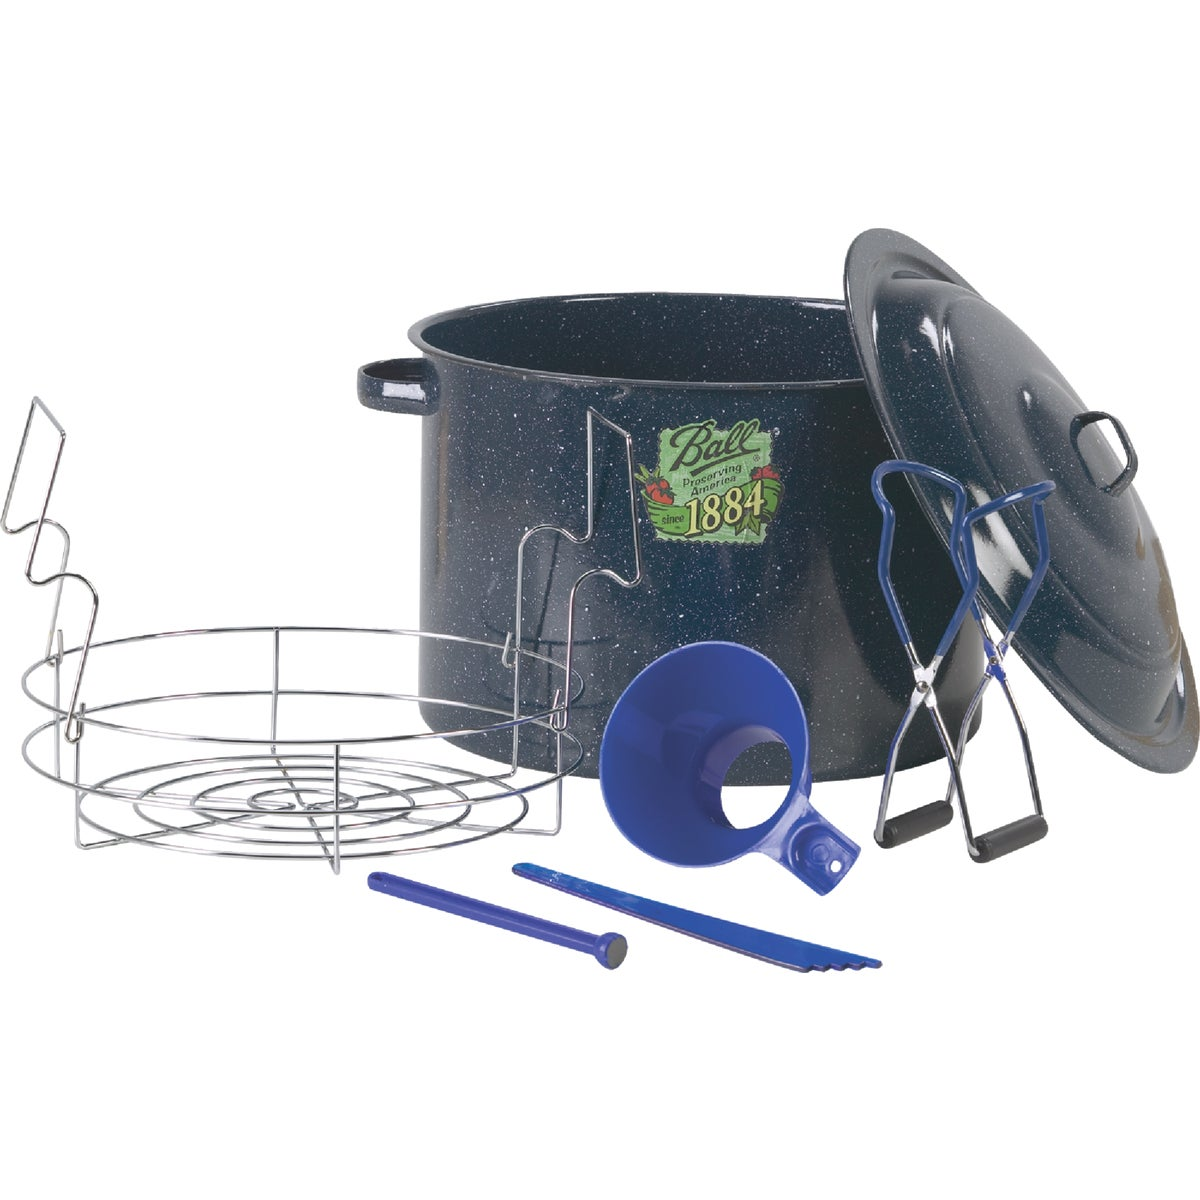 21QT CAN KIT W/UTENSILS - 1440010730 by Jarden Home Brands